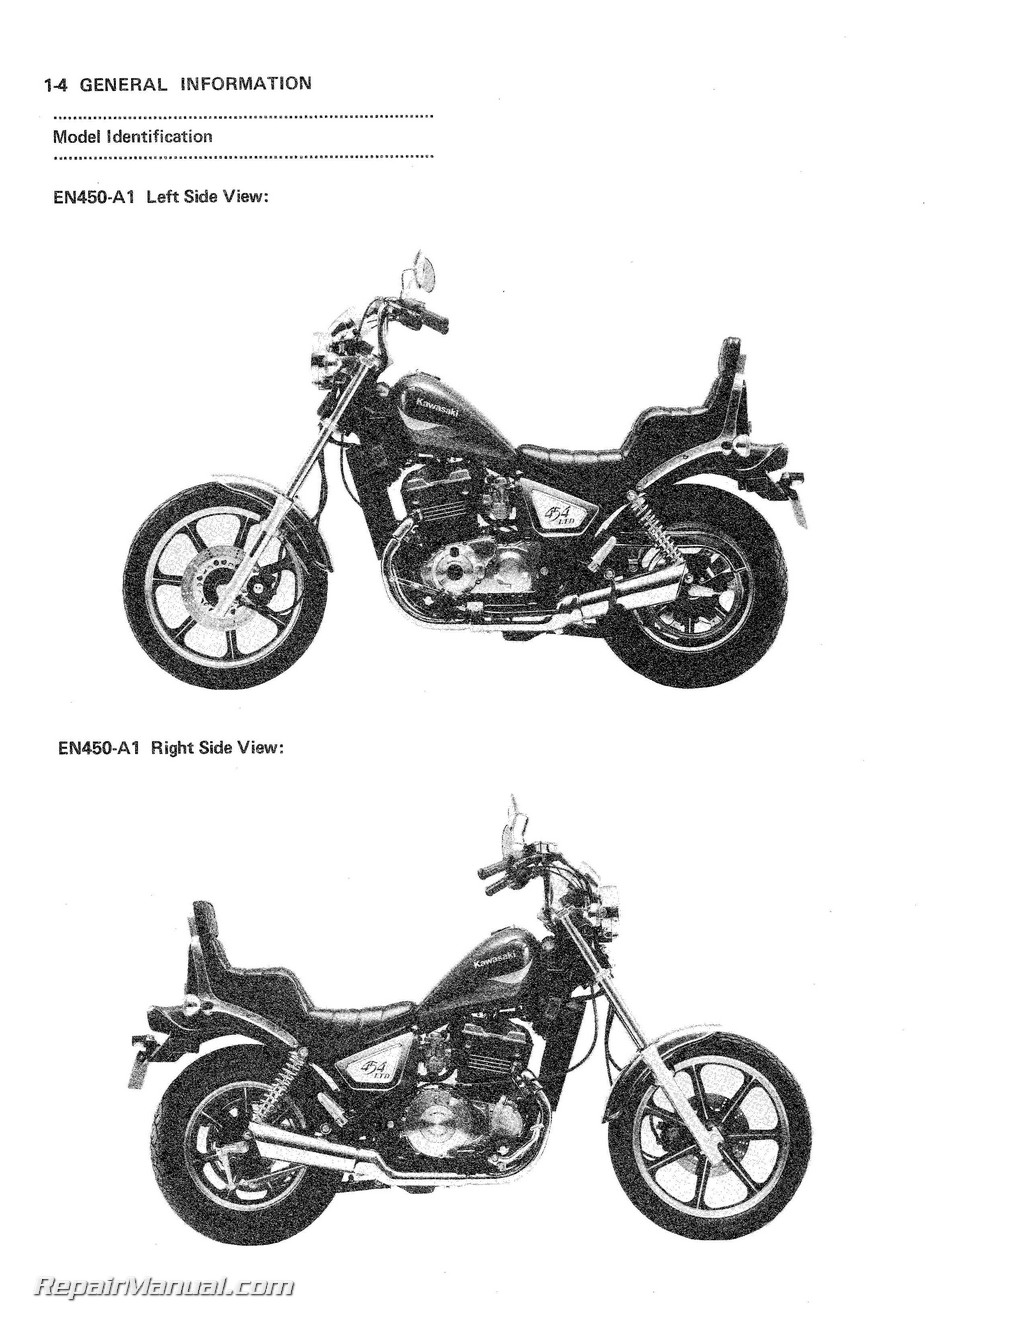 1984 Kawasaki EN450A1 454 LTD Service Manual